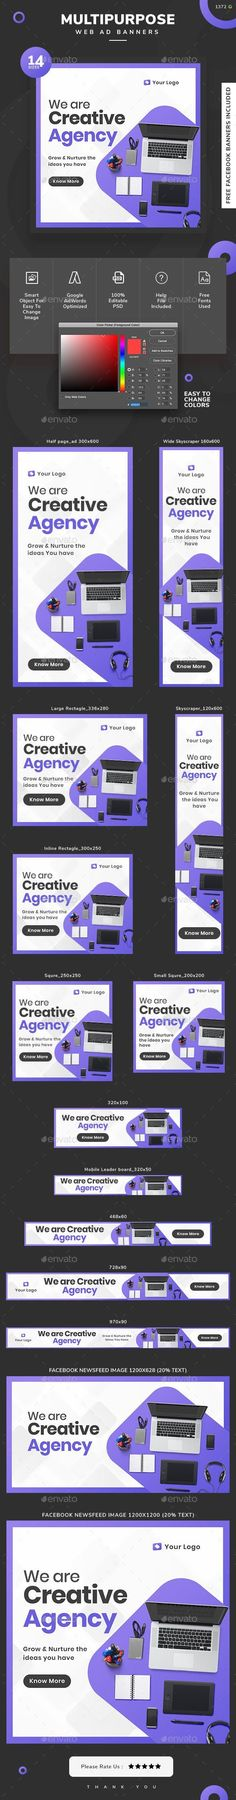 Buy Multipurpose Web Banner Set by Hyov on GraphicRiver. Promote your Products and services with this great looking Banner Set. Banner Design, Layout Design, Web Design, Graphic Design, Brochure Cover, Brochure Design, Typography Poster, Typography Design, Facebook Ad Size